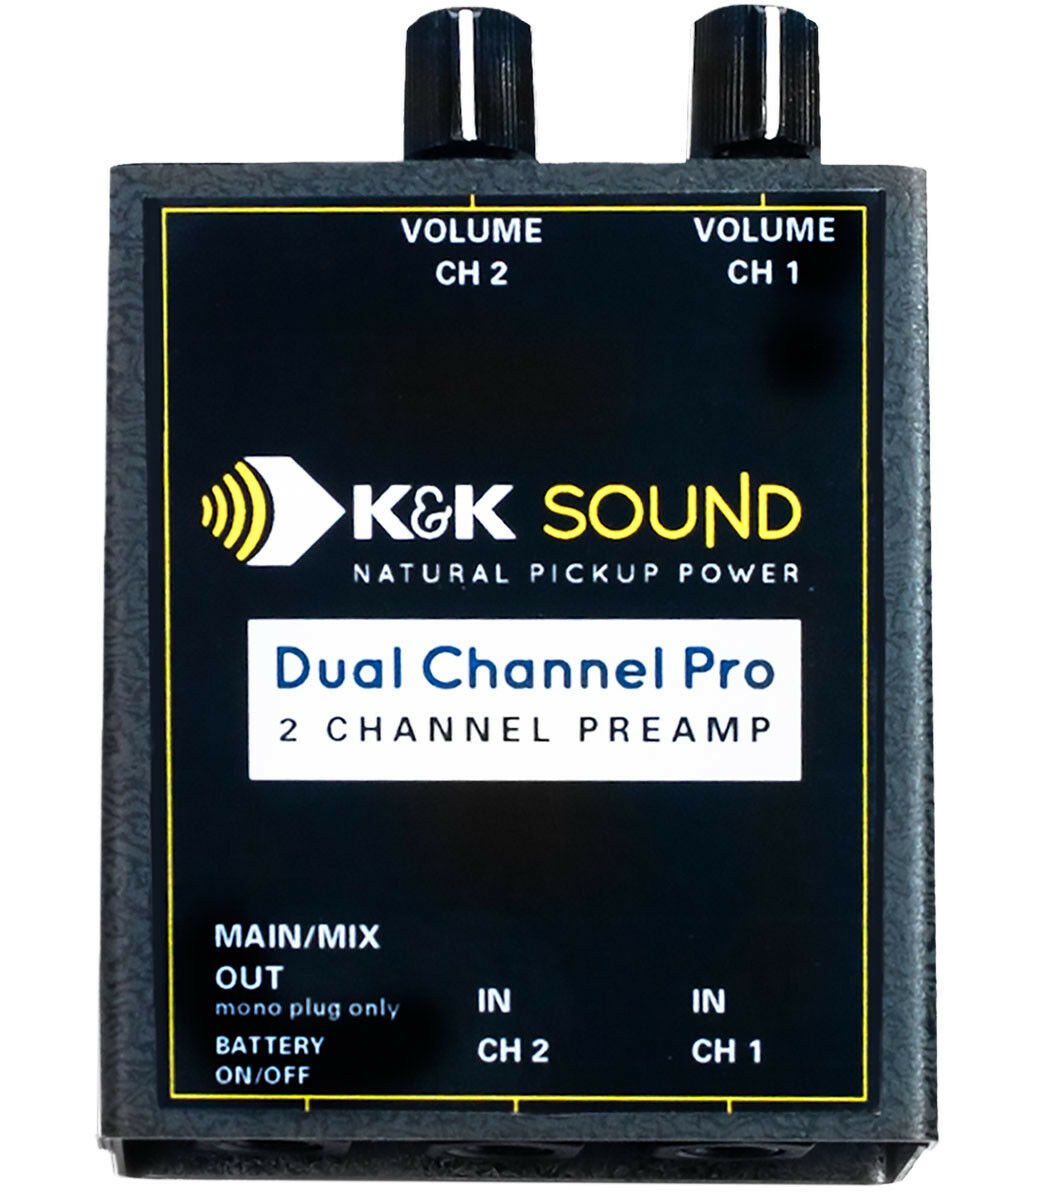 K&K Sound Dual Channel Pro Two Channel Guitar Preamp, Dual 1/4